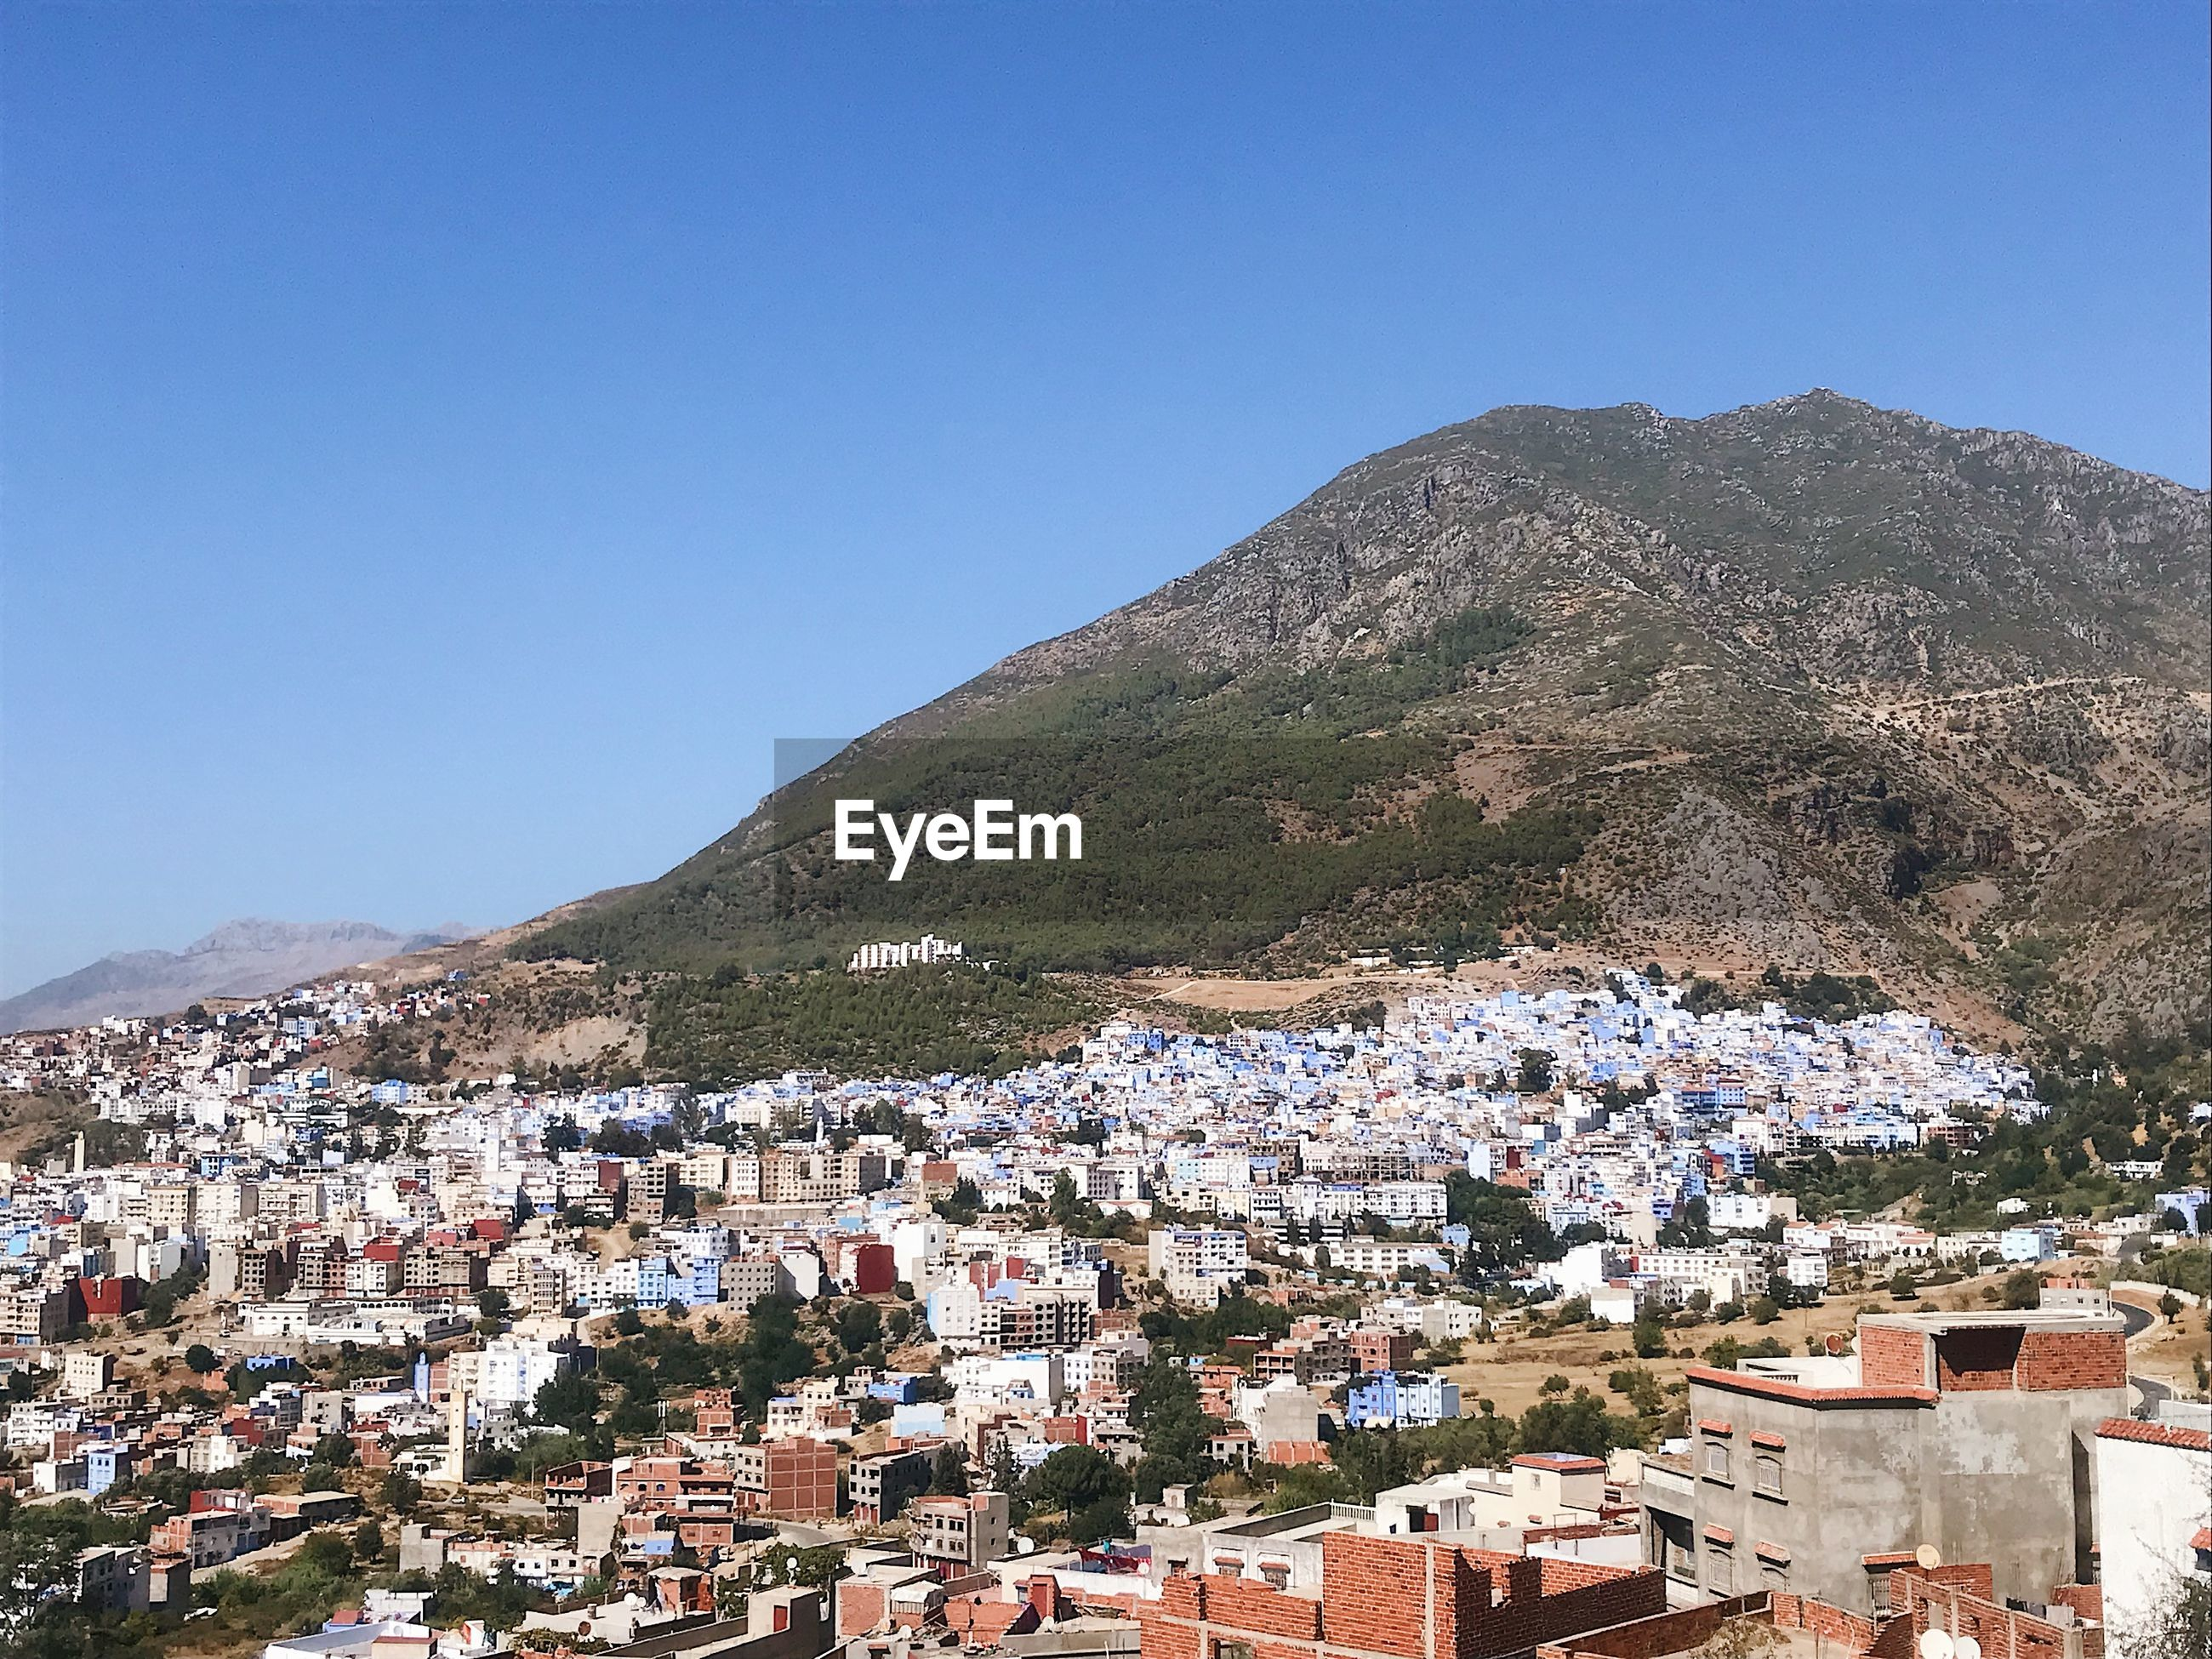 Aerial view of townscape by mountain against clear blue sky